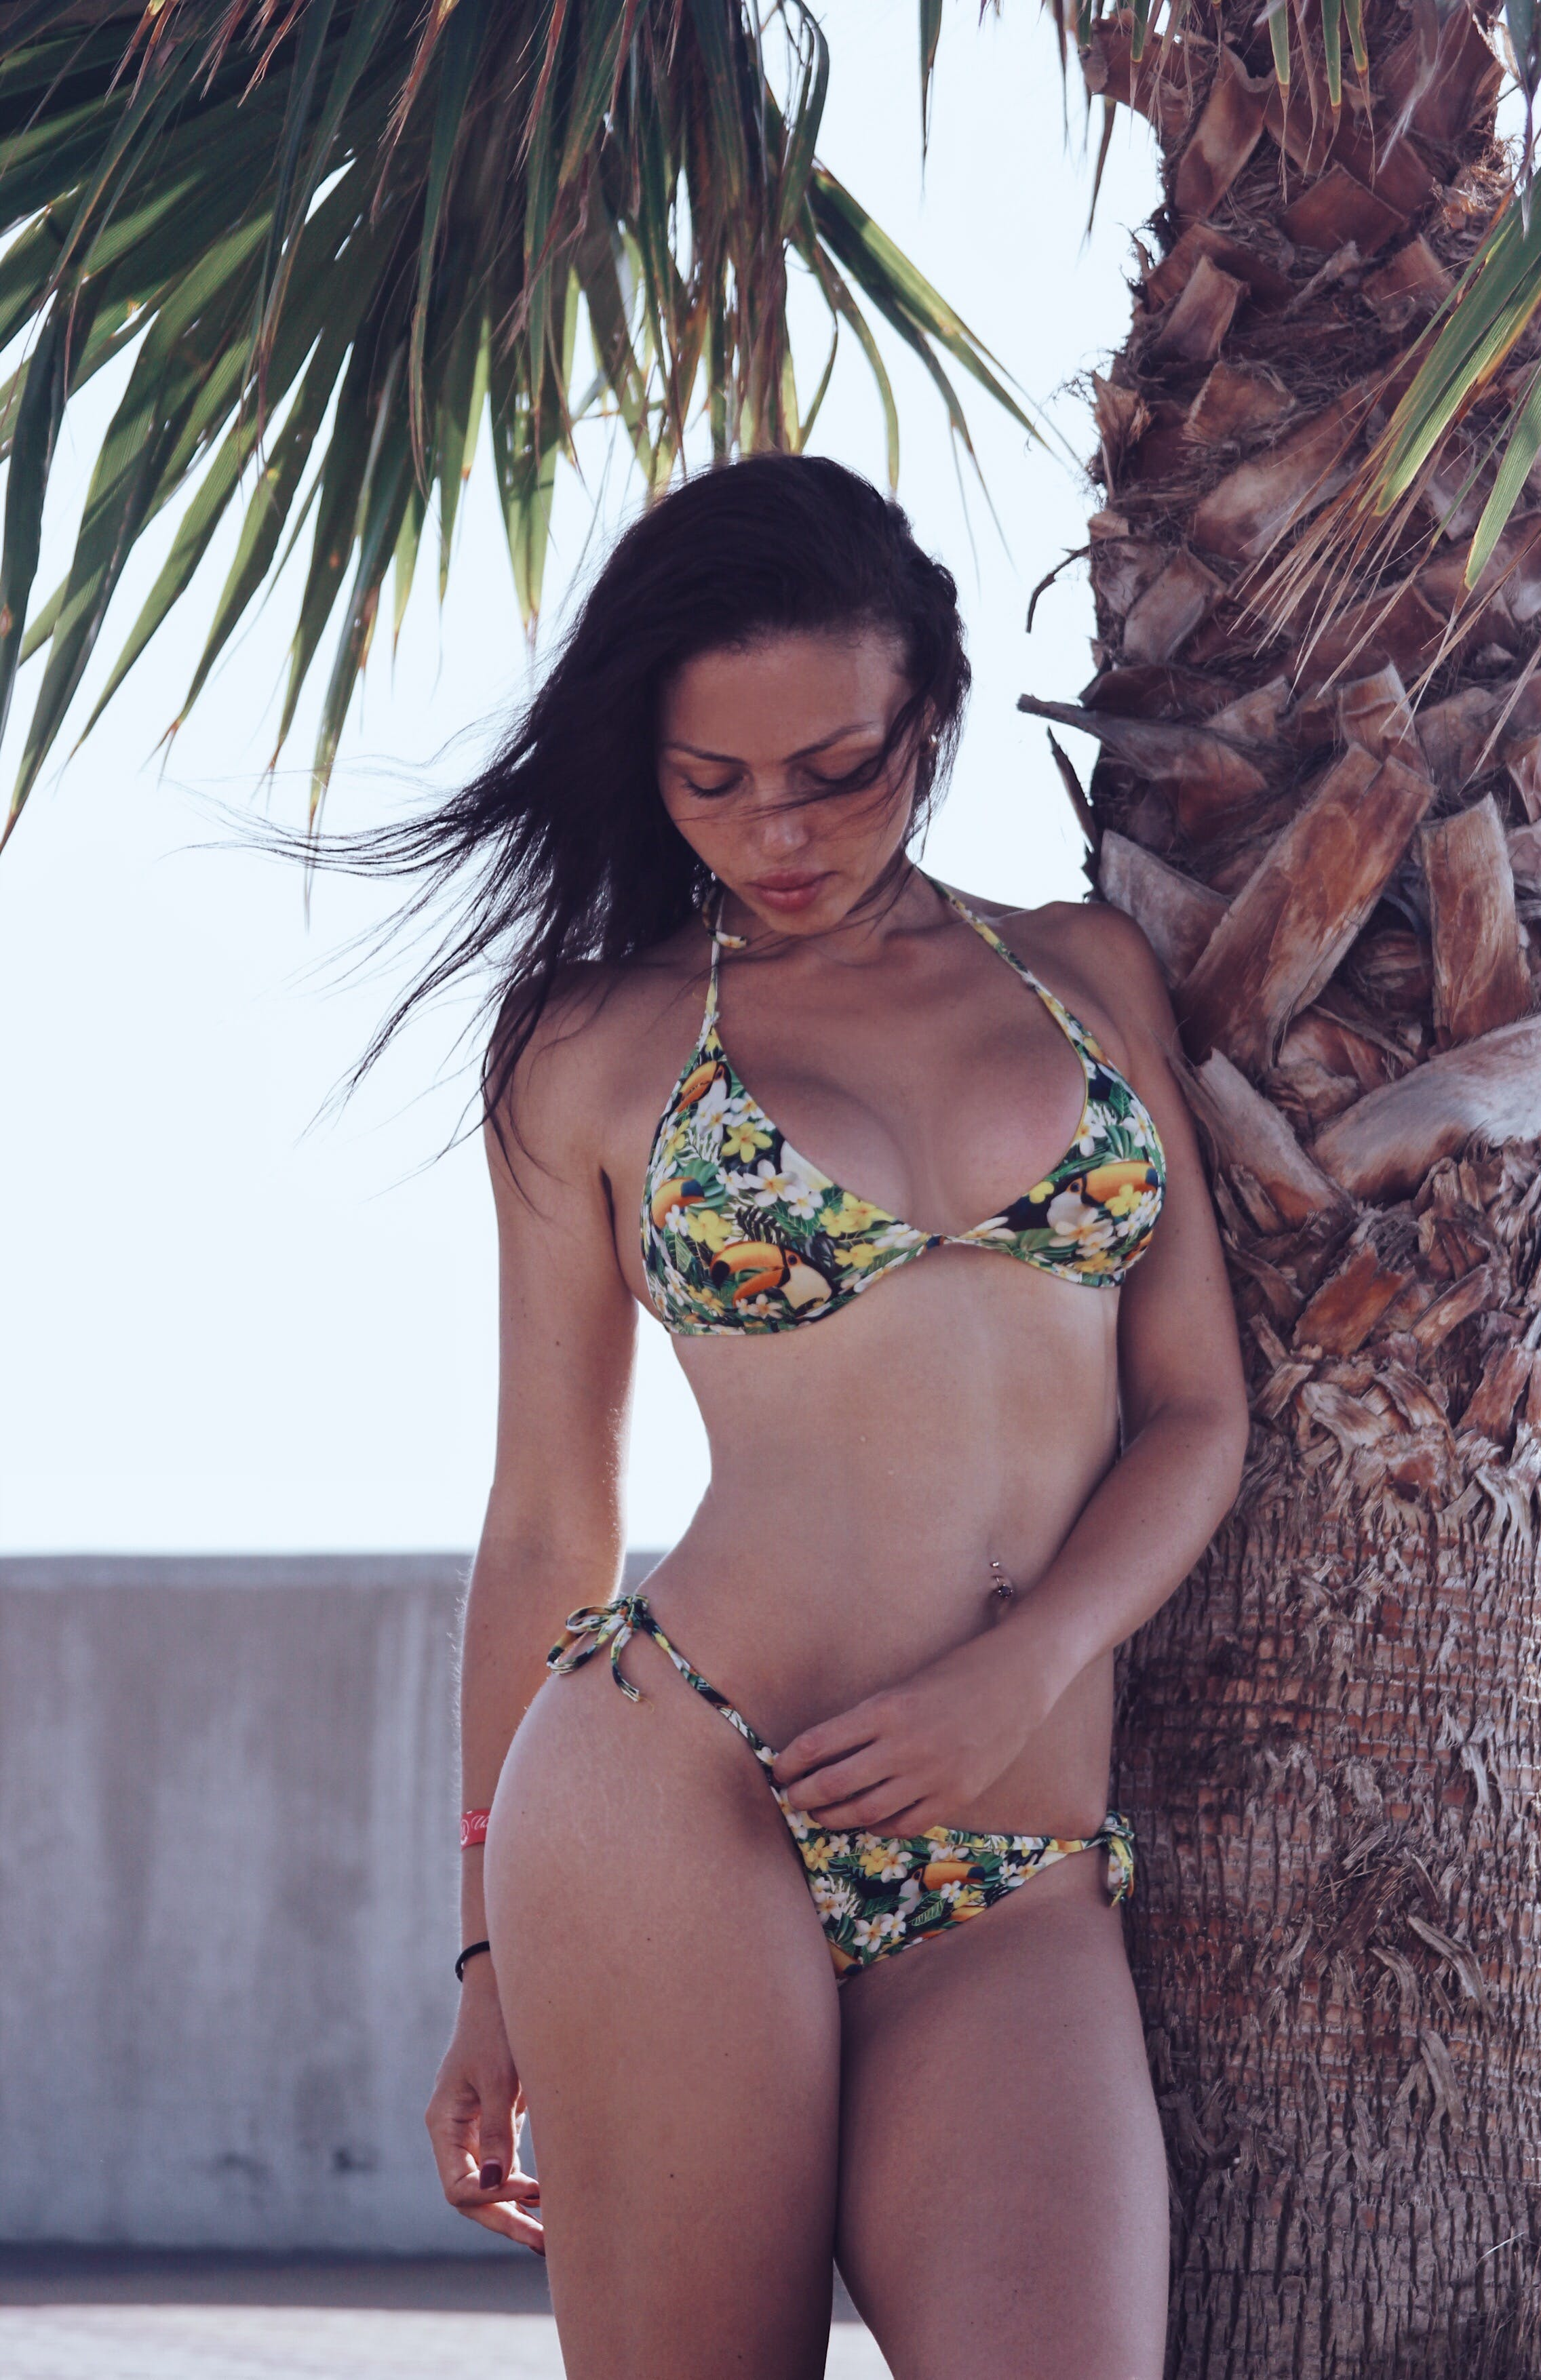 Black Haired Woman in Green and White Floral Print Bikini